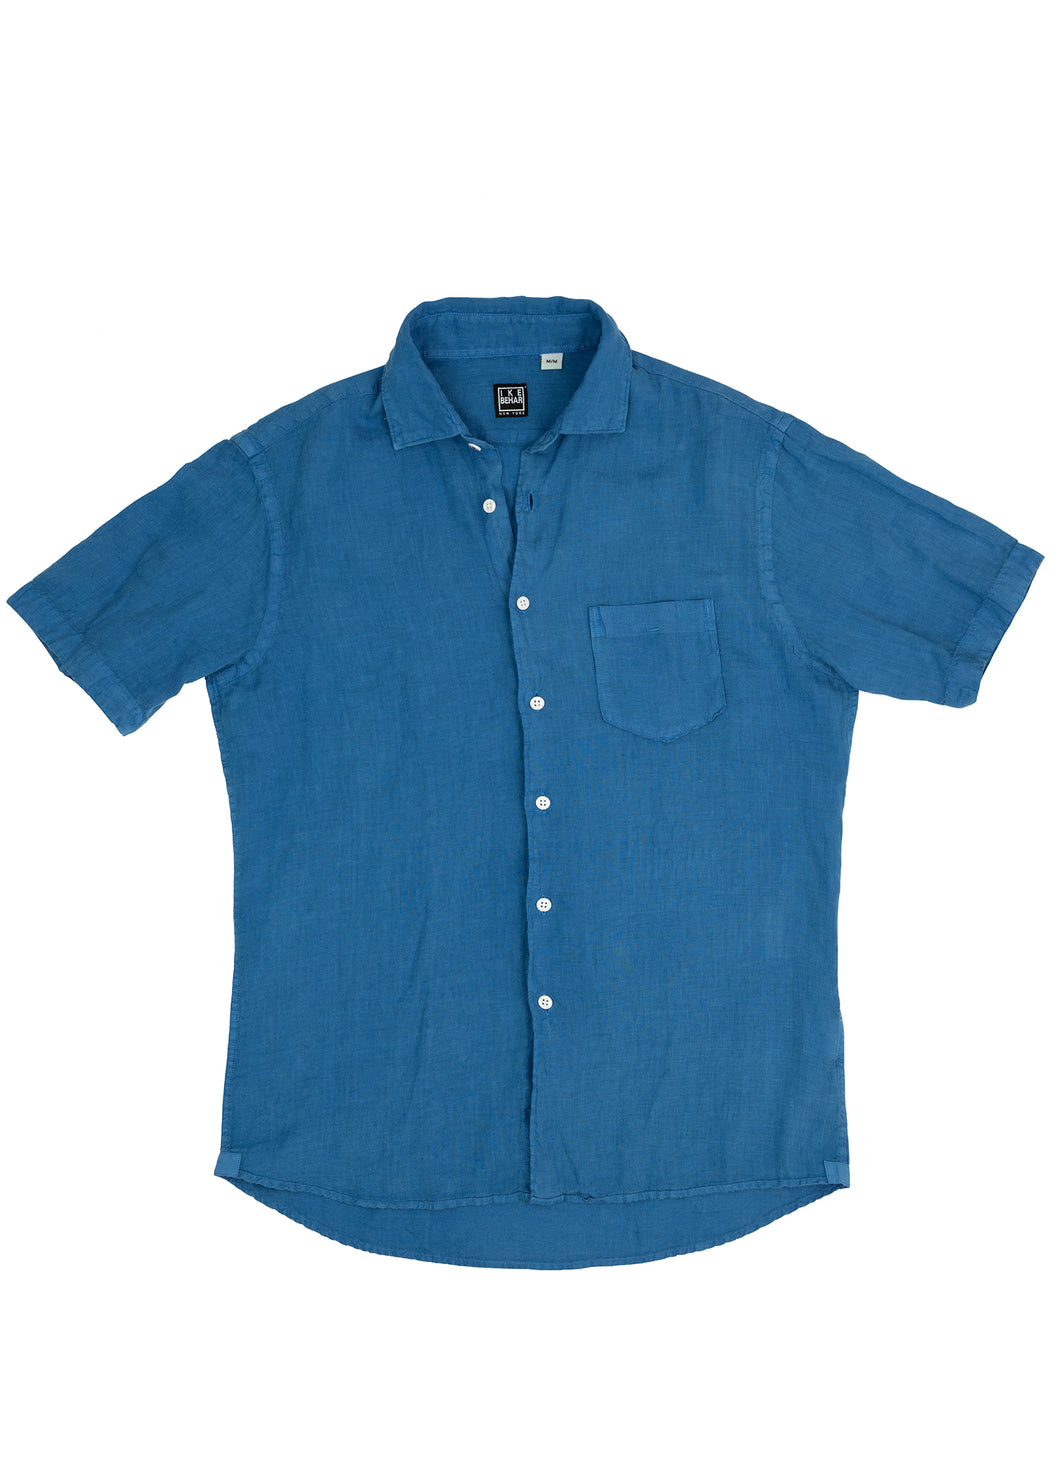 Blue Linen Short Sleeve Sport Shirt